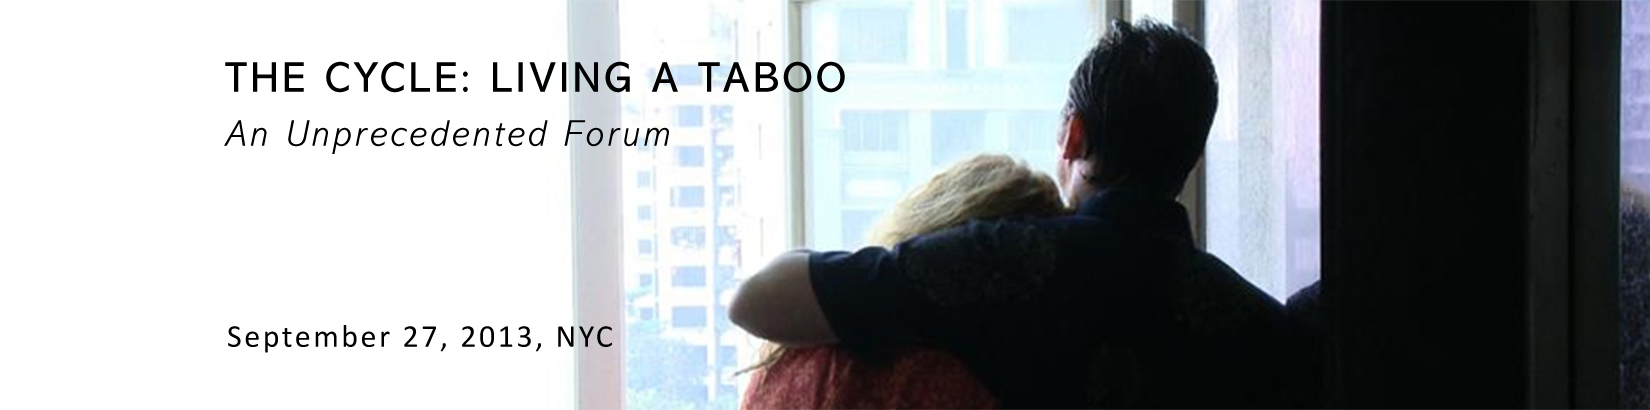 The Cycle: Living A Taboo